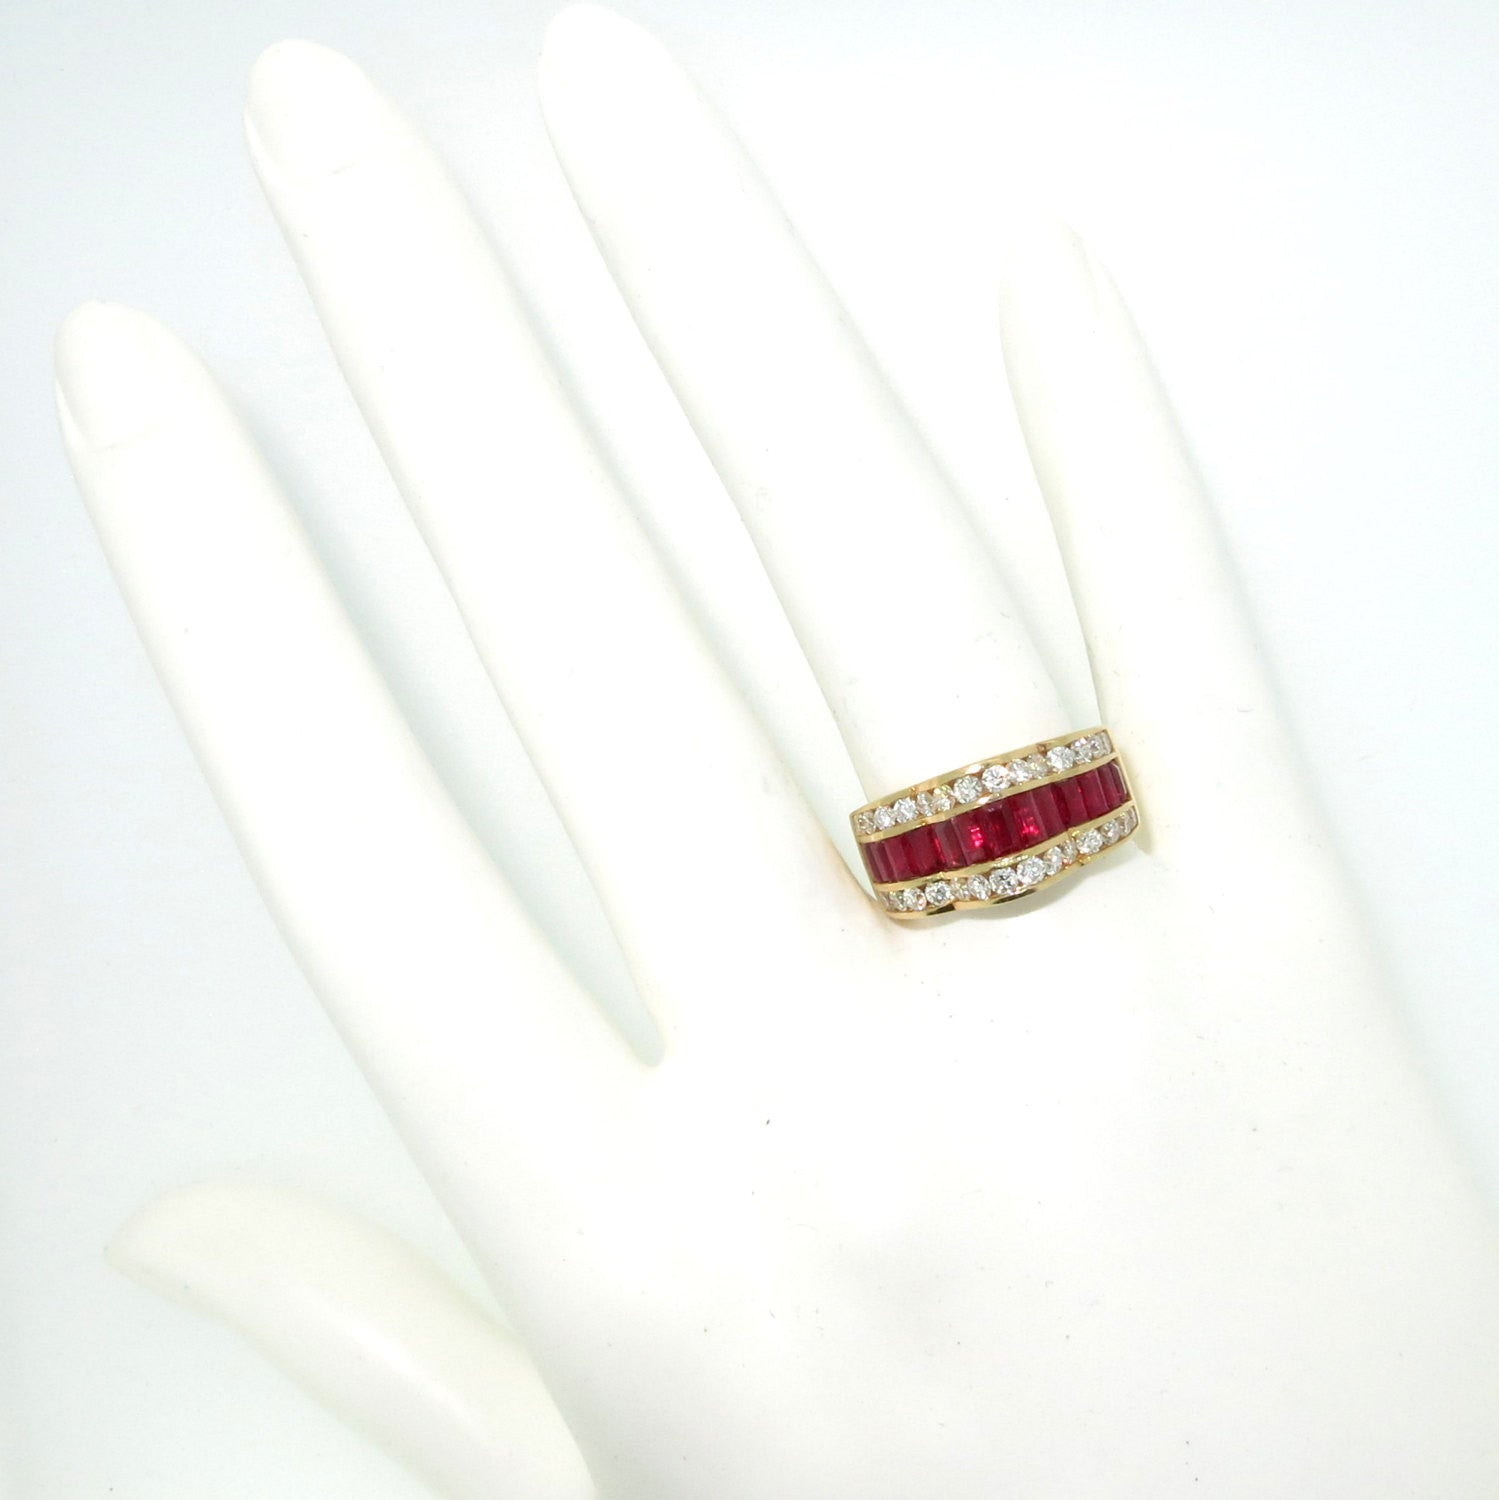 Ruby Gemstone & Diamond Engagement Ring, Anniversary Ring, Gemstone Engagement Ring, Alternative Engagement Ring, Cocktail Ring